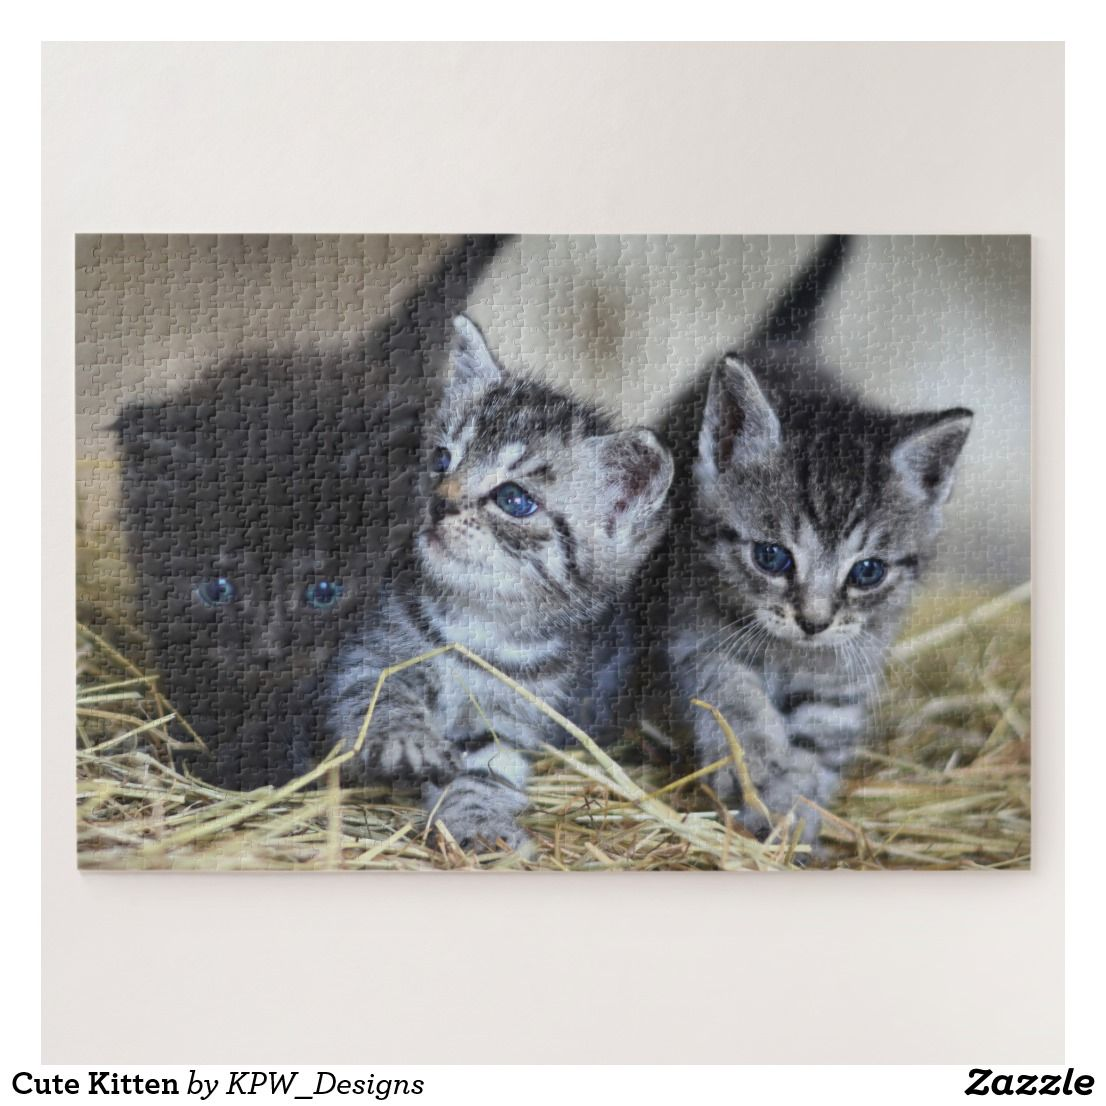 Cute Kitten Jigsaw Puzzle Zazzle Com Kittens Cutest Kitten Make Your Own Puzzle